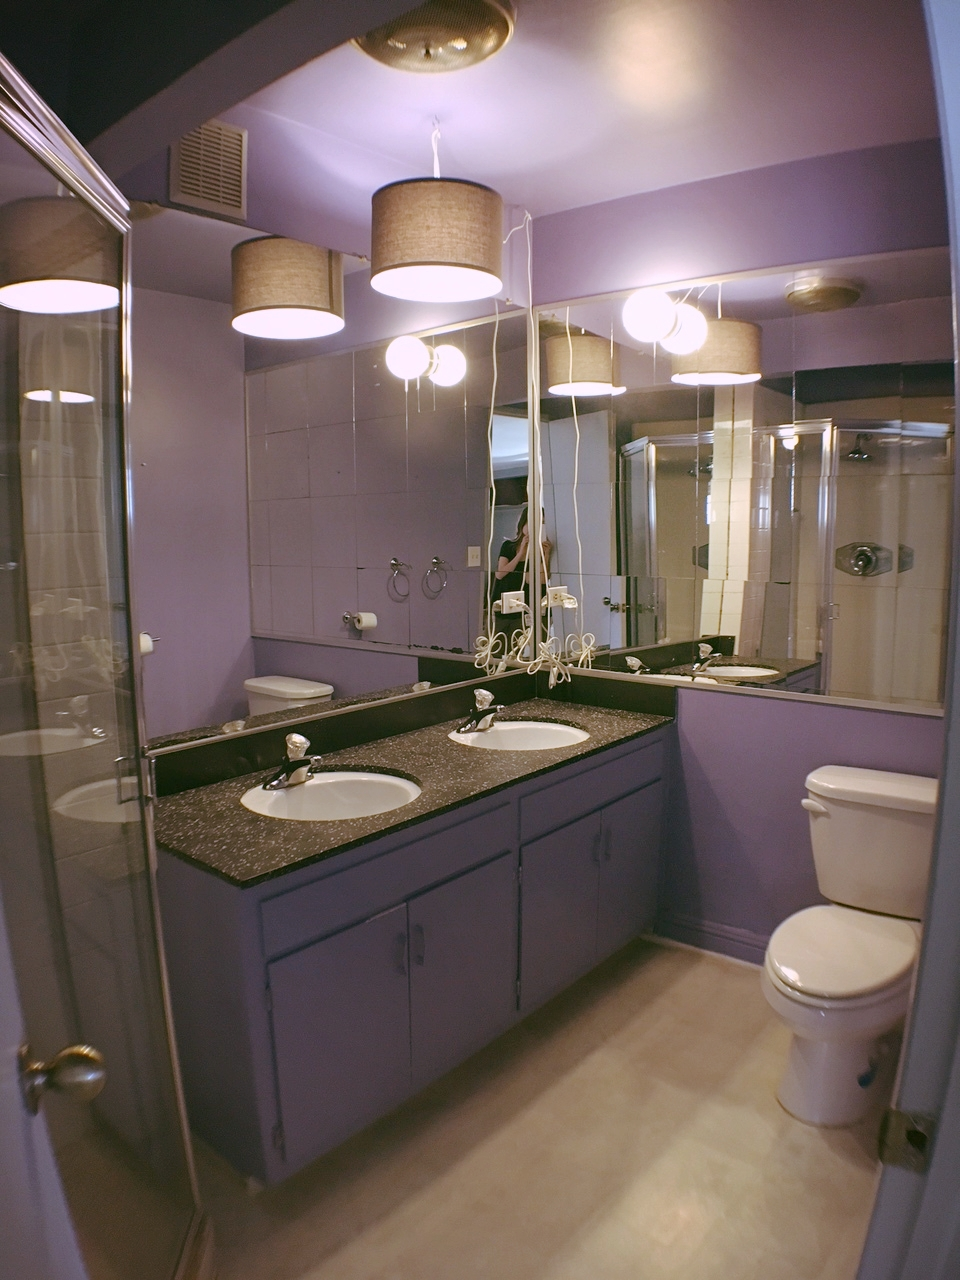 The original bathroom, purple and mirrors... need I say more on why this had to go?